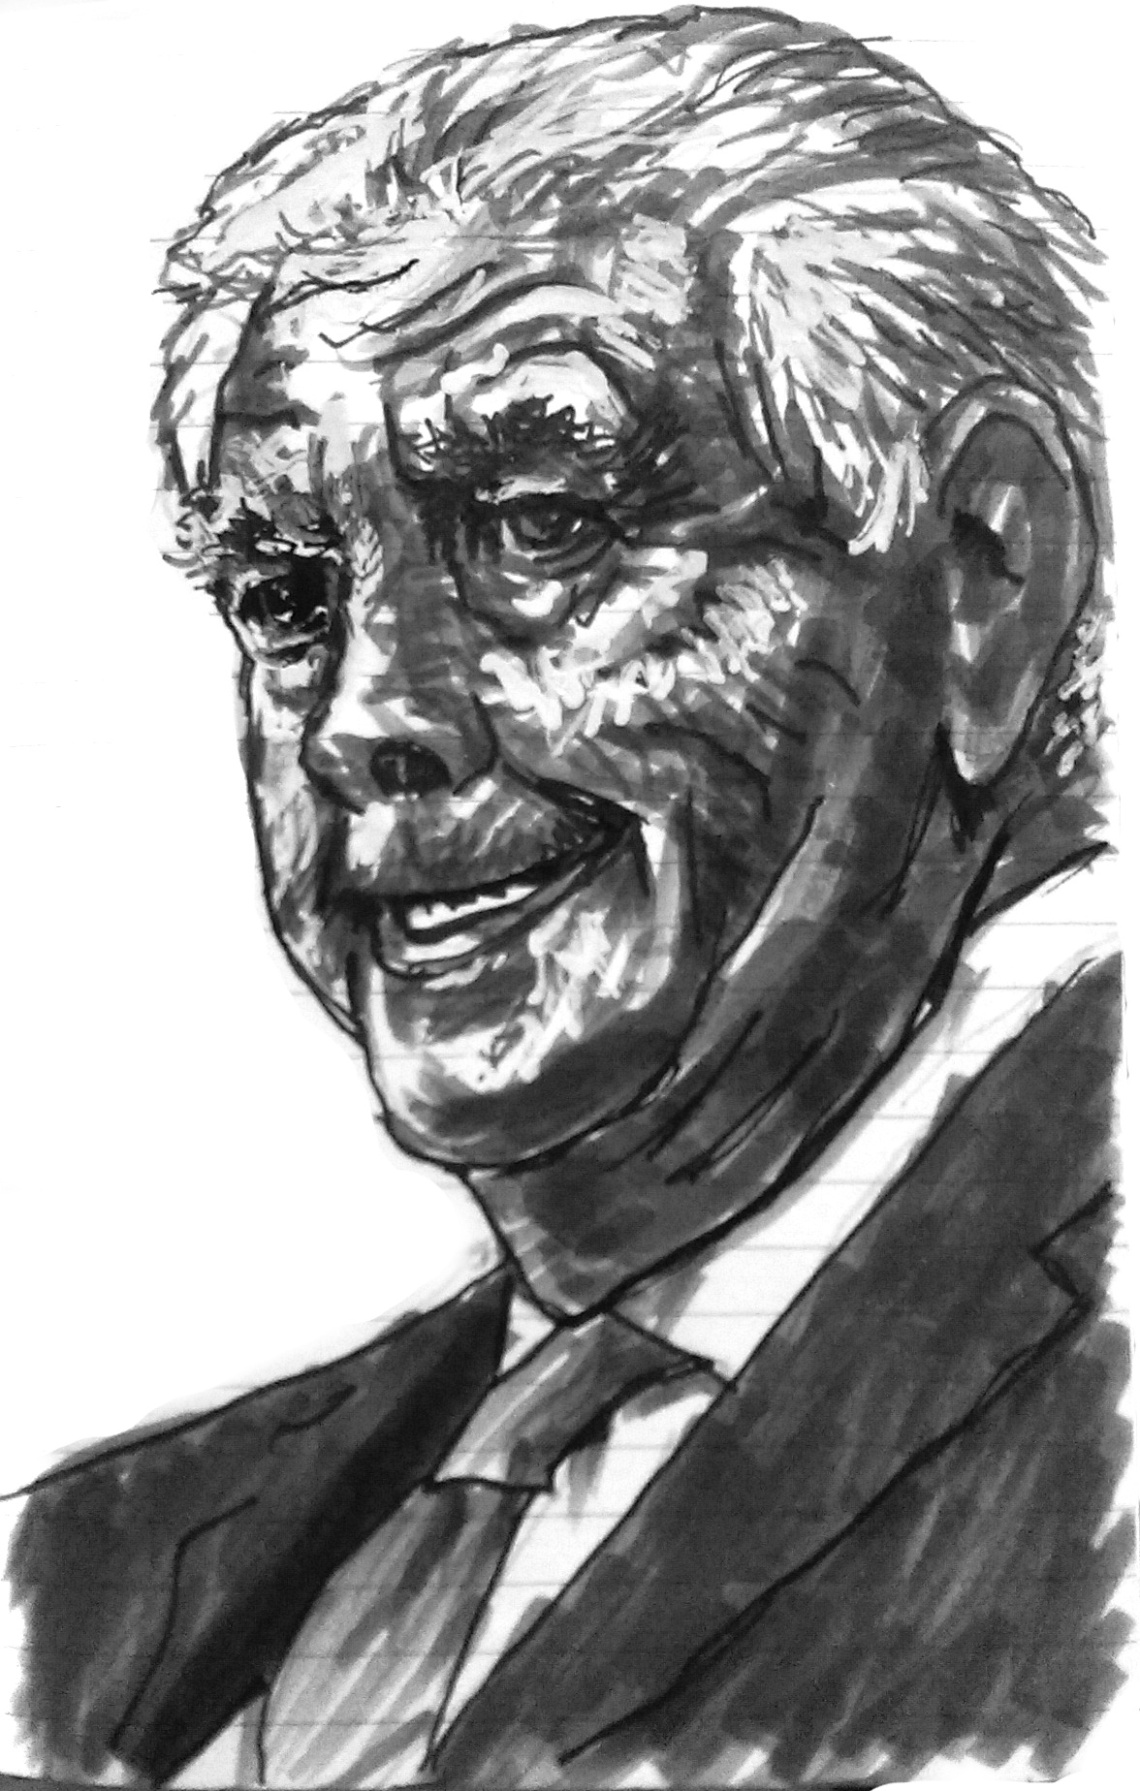 Rex Tillerson illustration